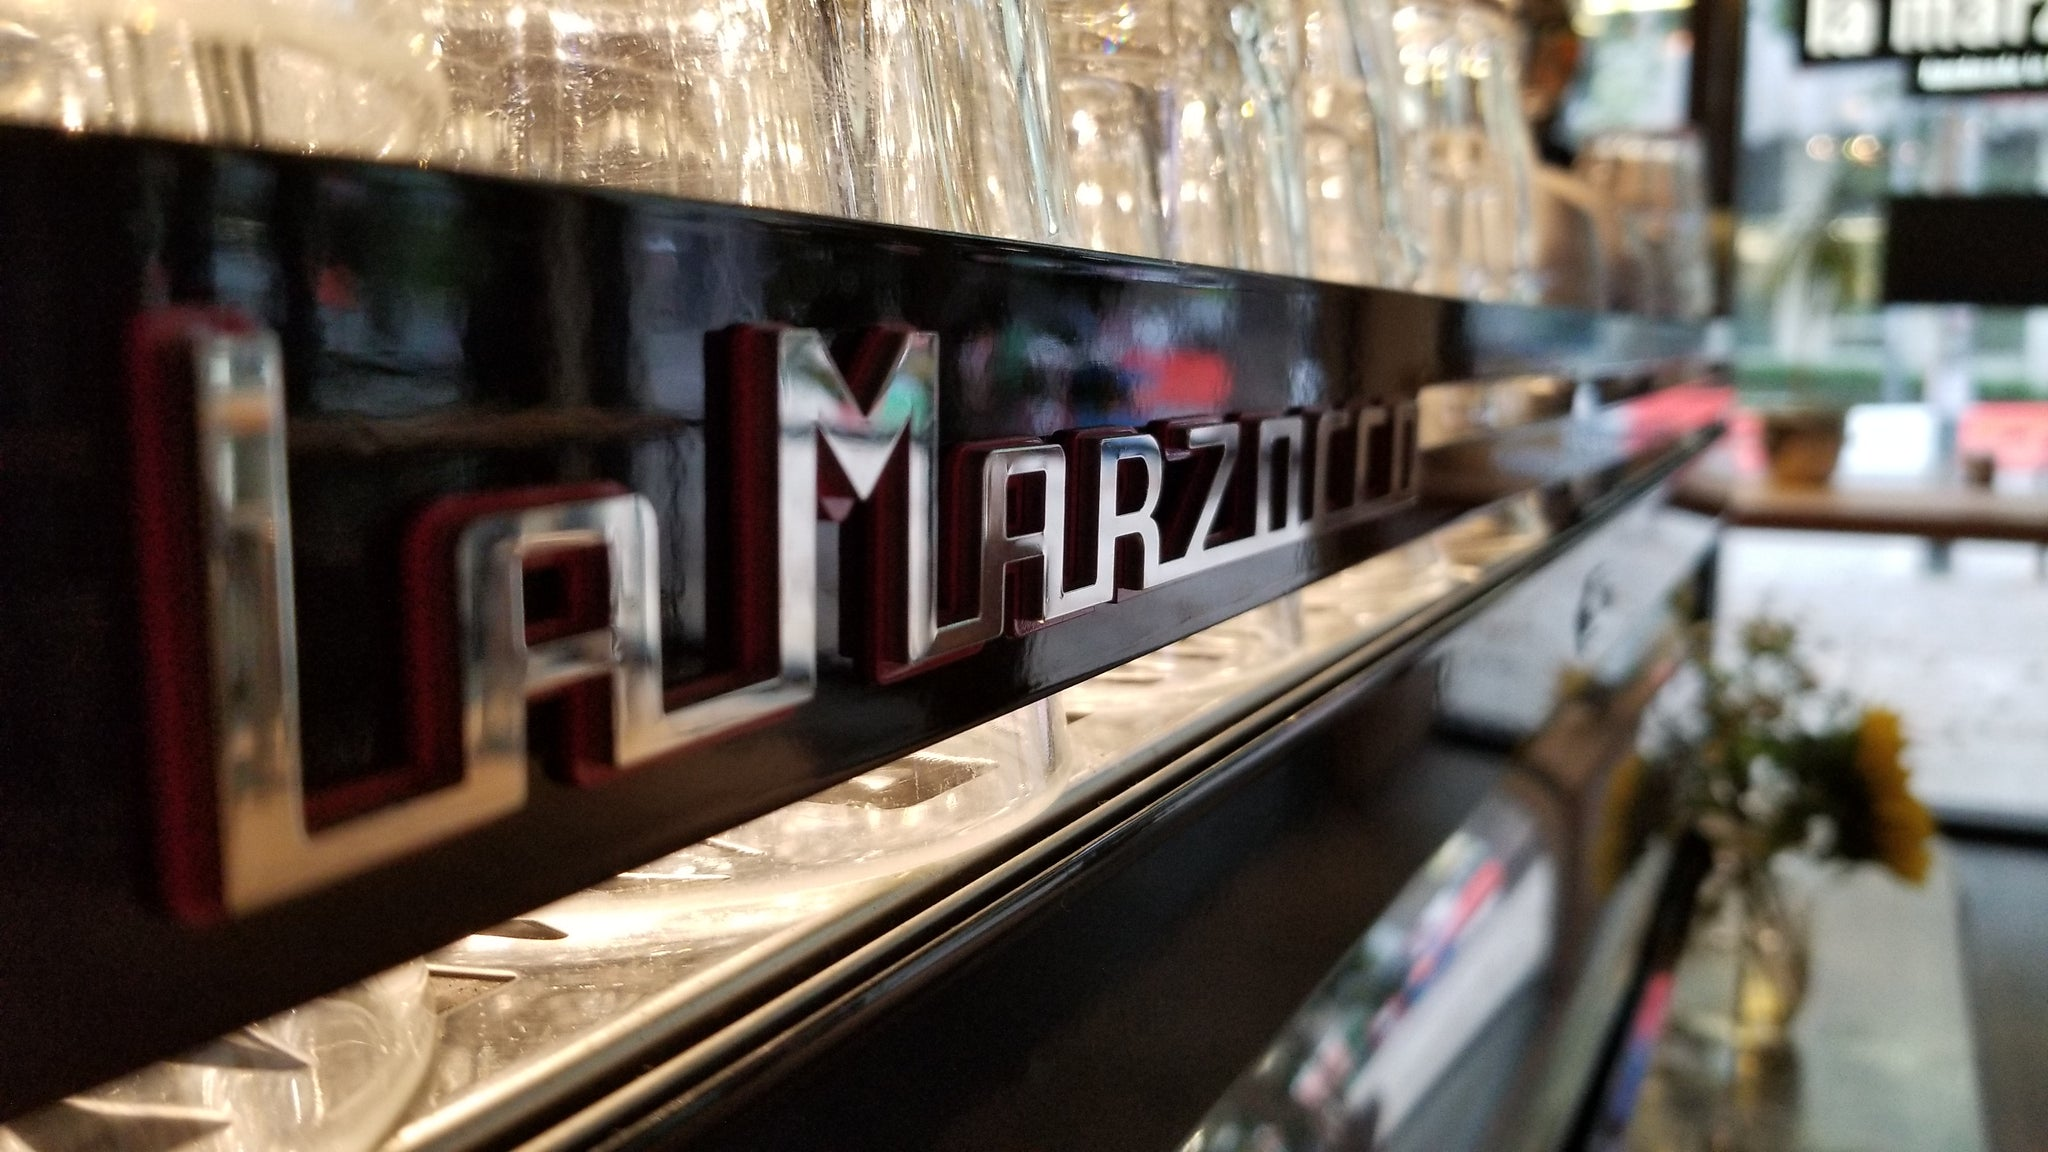 What does the La Marzocco roaster residency mean to us? What does it mean to be in the business of coffee? What are coffee houses for?